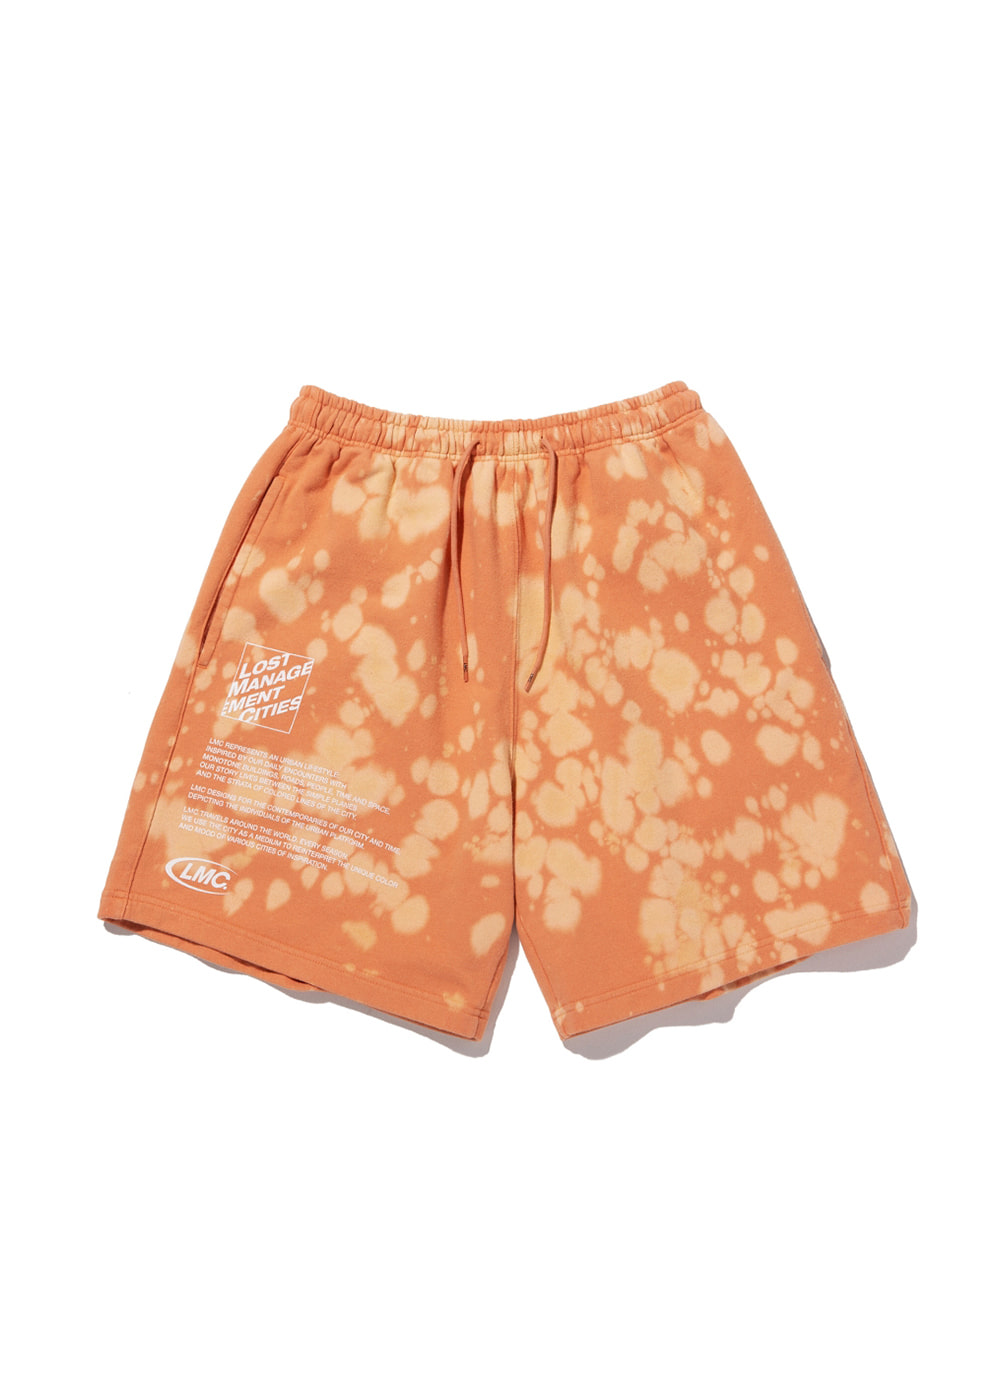 LMC EXPL BLEACH SWEAT SHORTS salmon